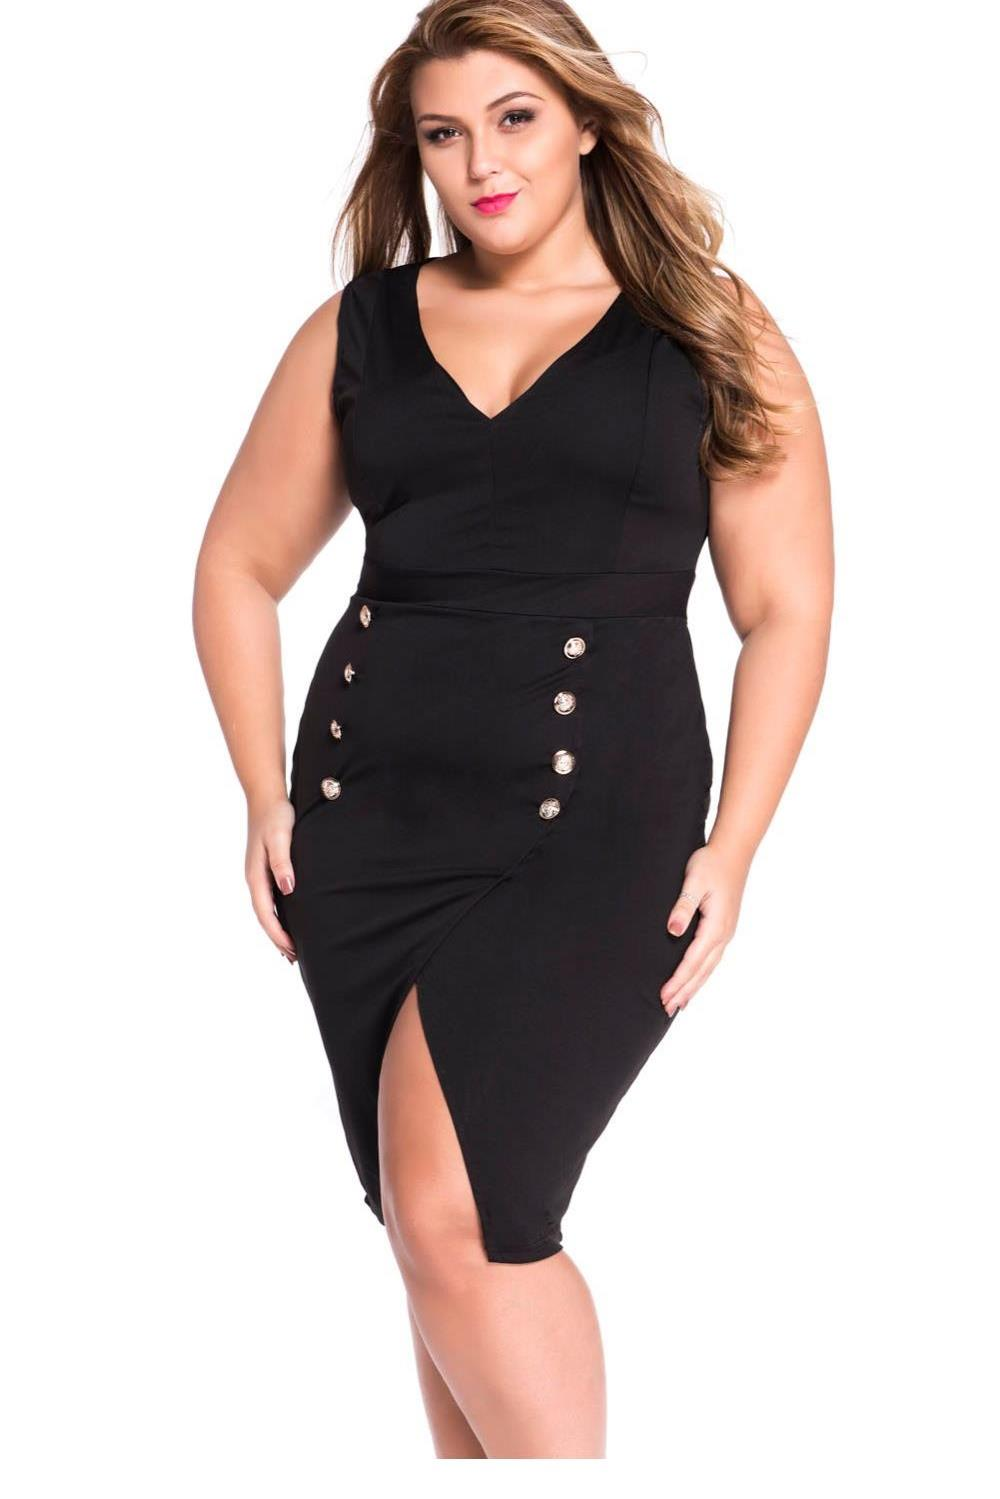 Bodycon Dresses 2016 Fashion Sring Autumn Style One Piece Casual Clothing Plus Size Military Gold Button Dress Black LC22640(China (Mainland))